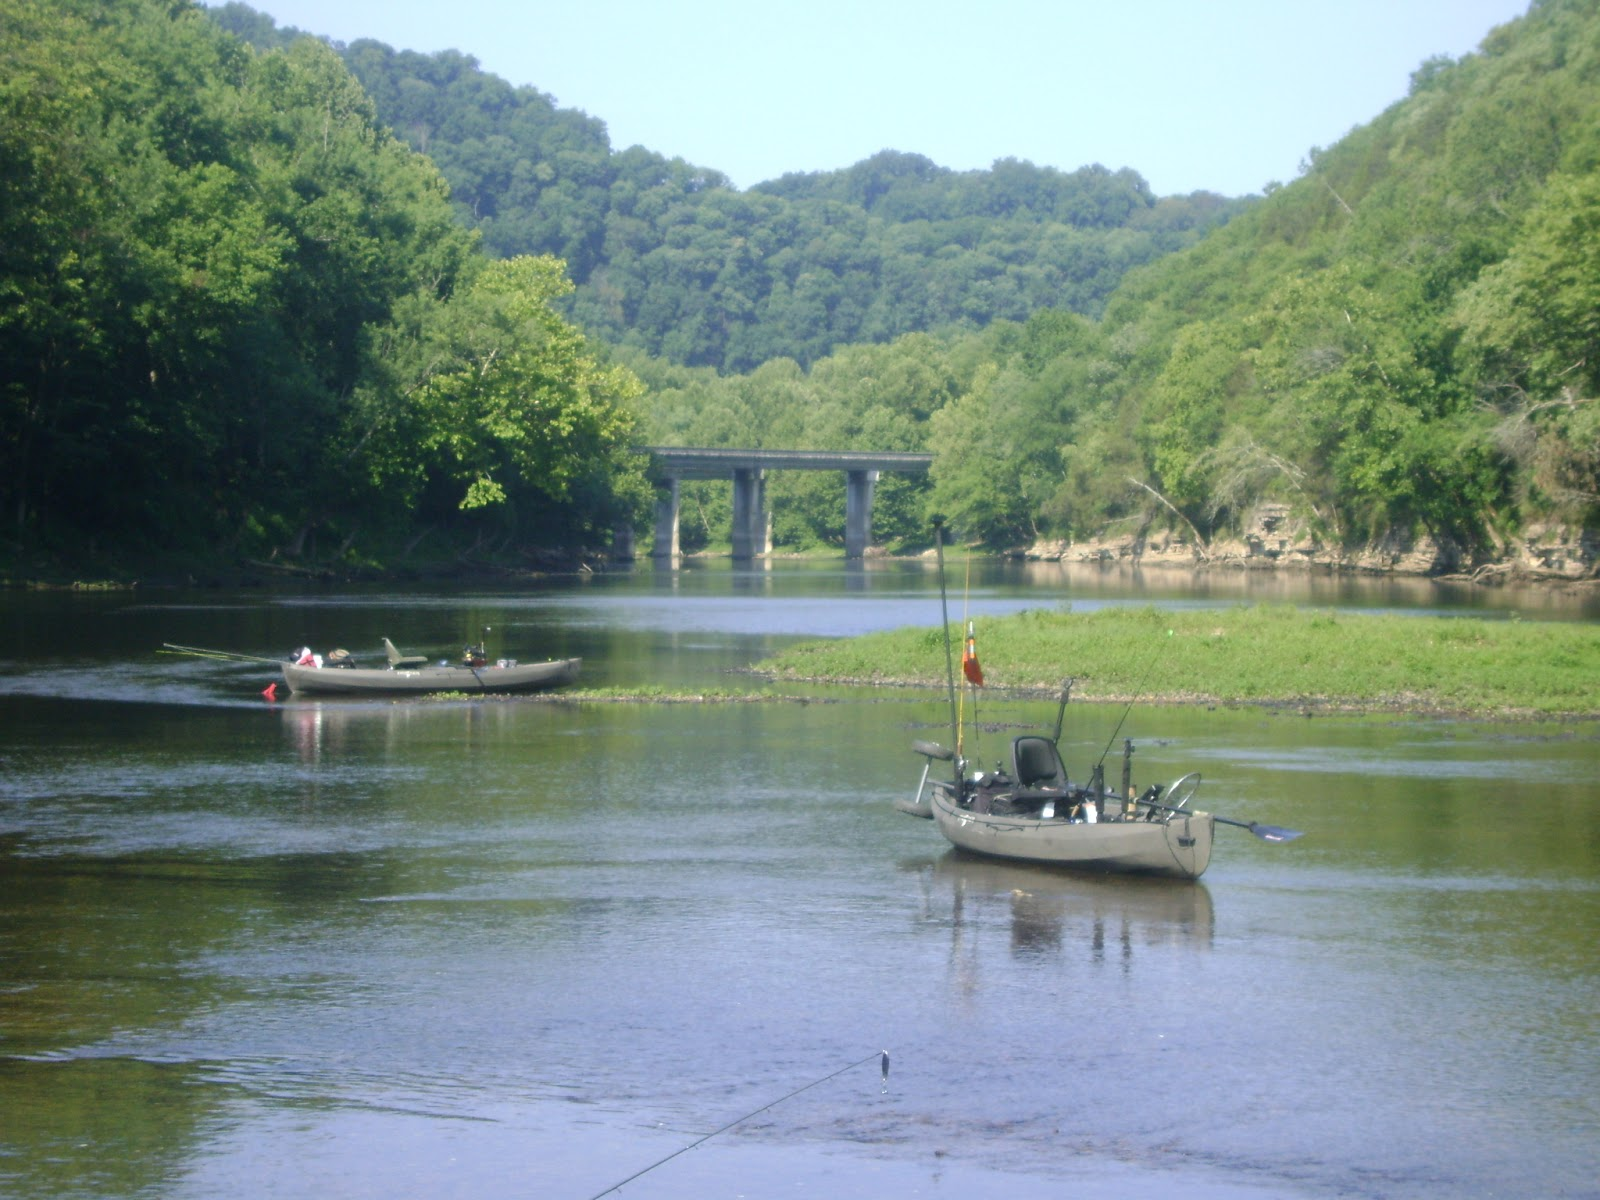 Cumberland river fishing blog caney fork june 18th for Cumberland river fishing